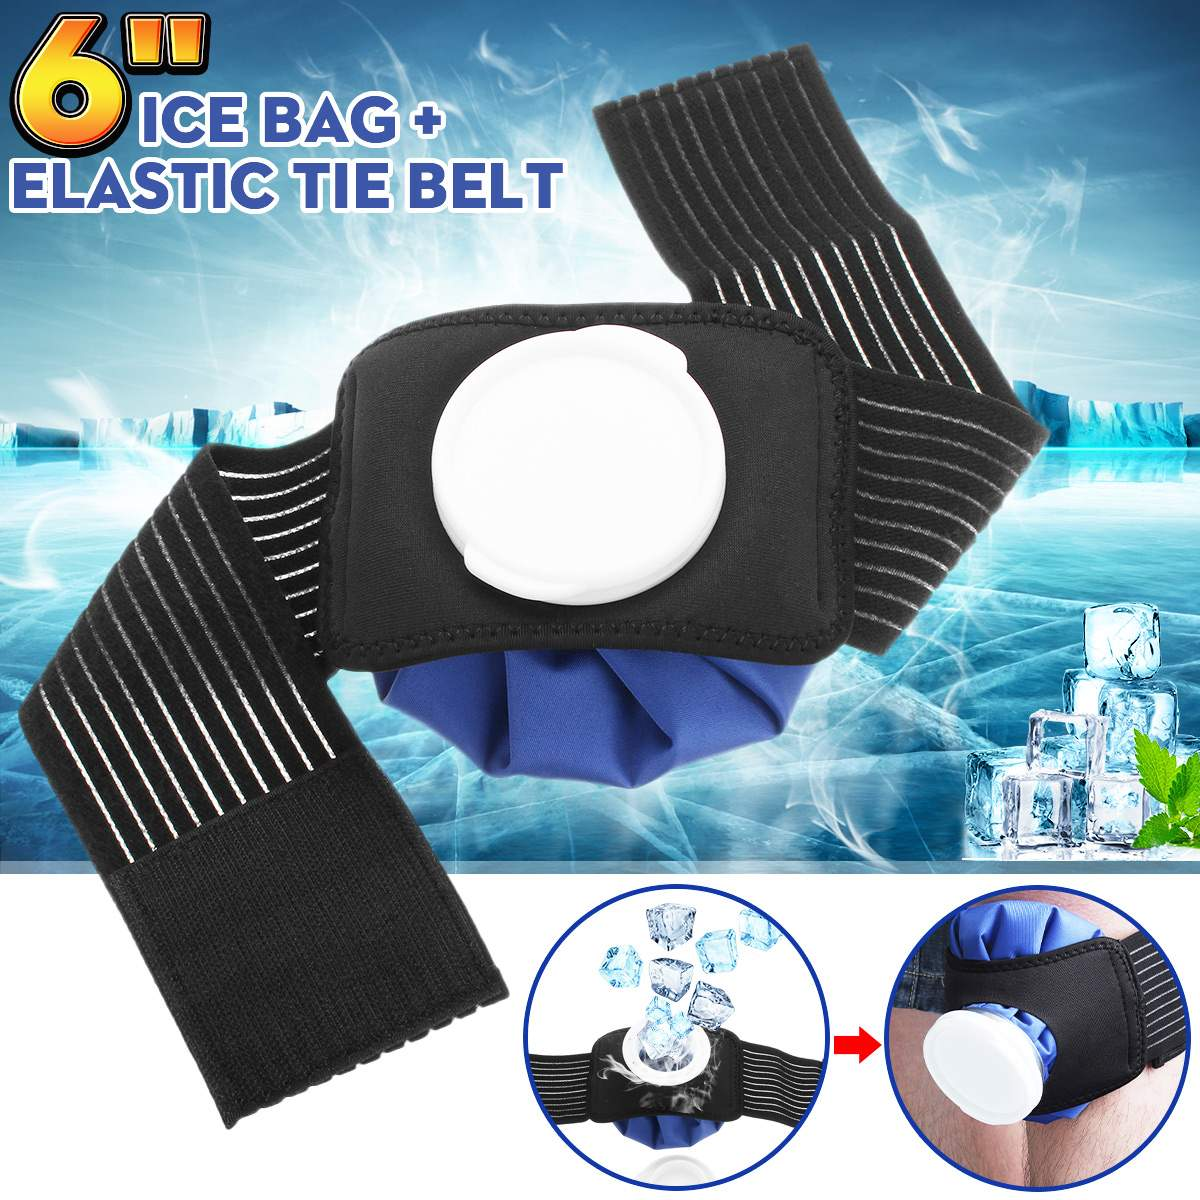 6 Inch Pain Relief Hot Cold Therapy Reusable Ice Bag Pack Wrap For Knee Shoulder Back Waist Outdoor Sport First Aid